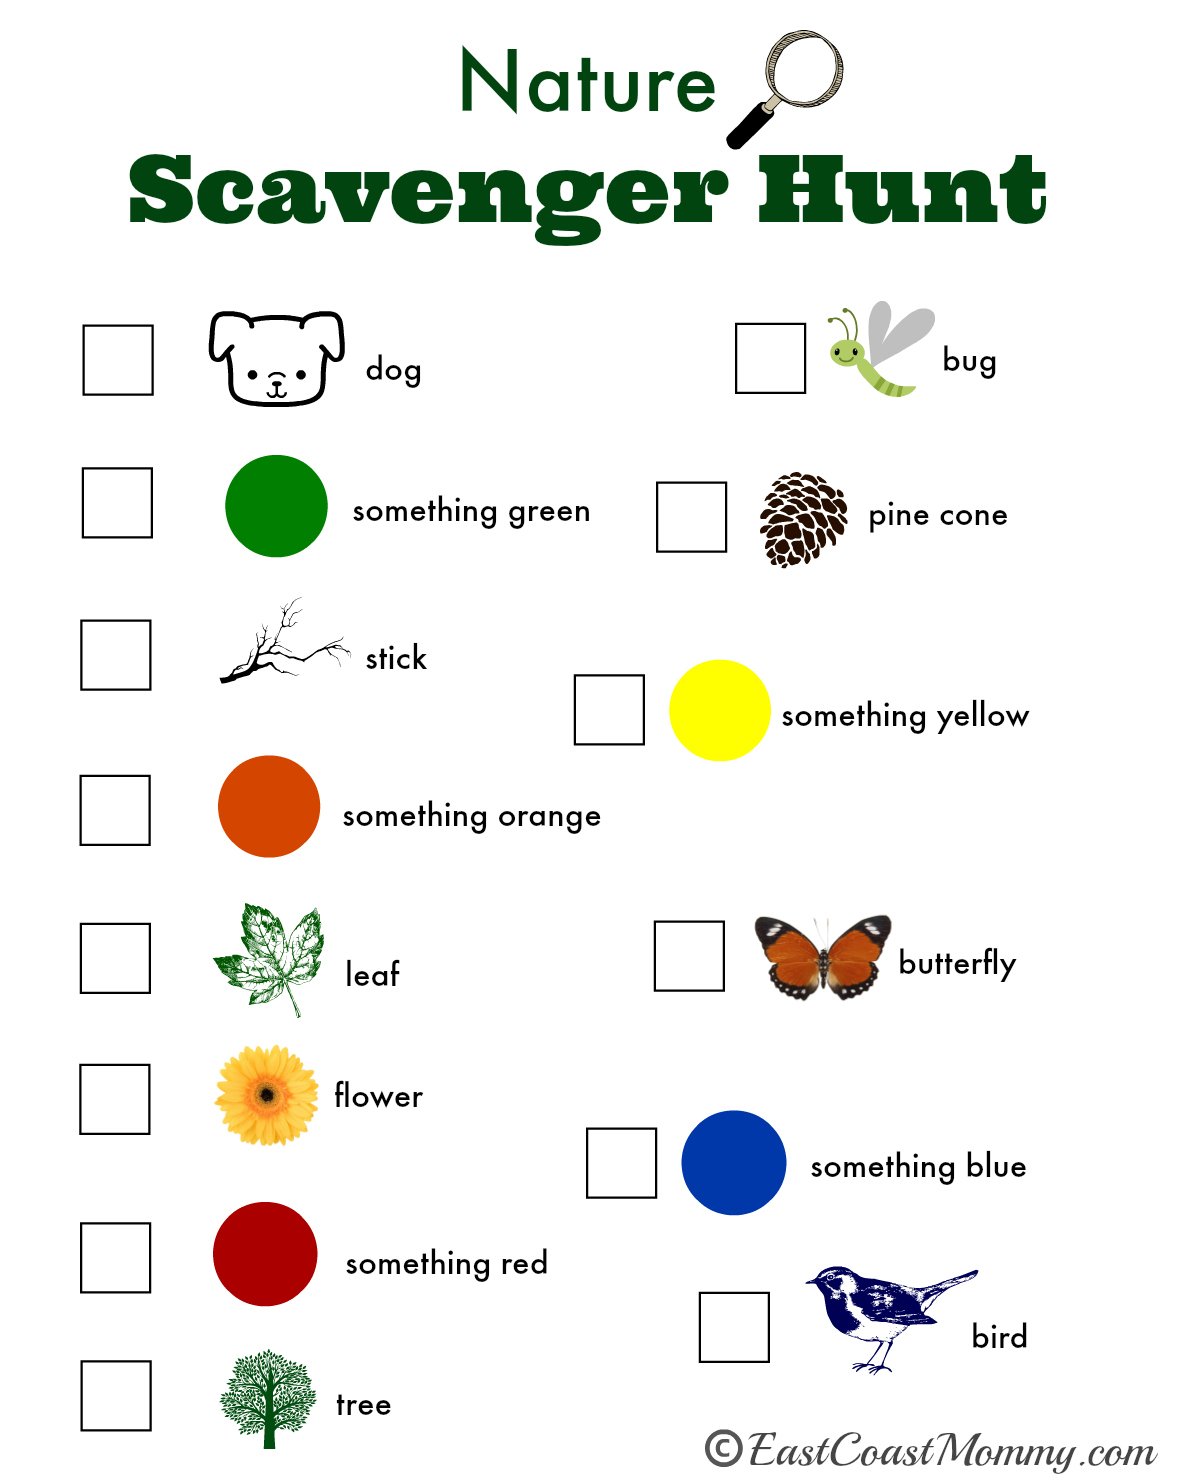 East Coast Mommy Nature Scavenger Hunt With Free Printable